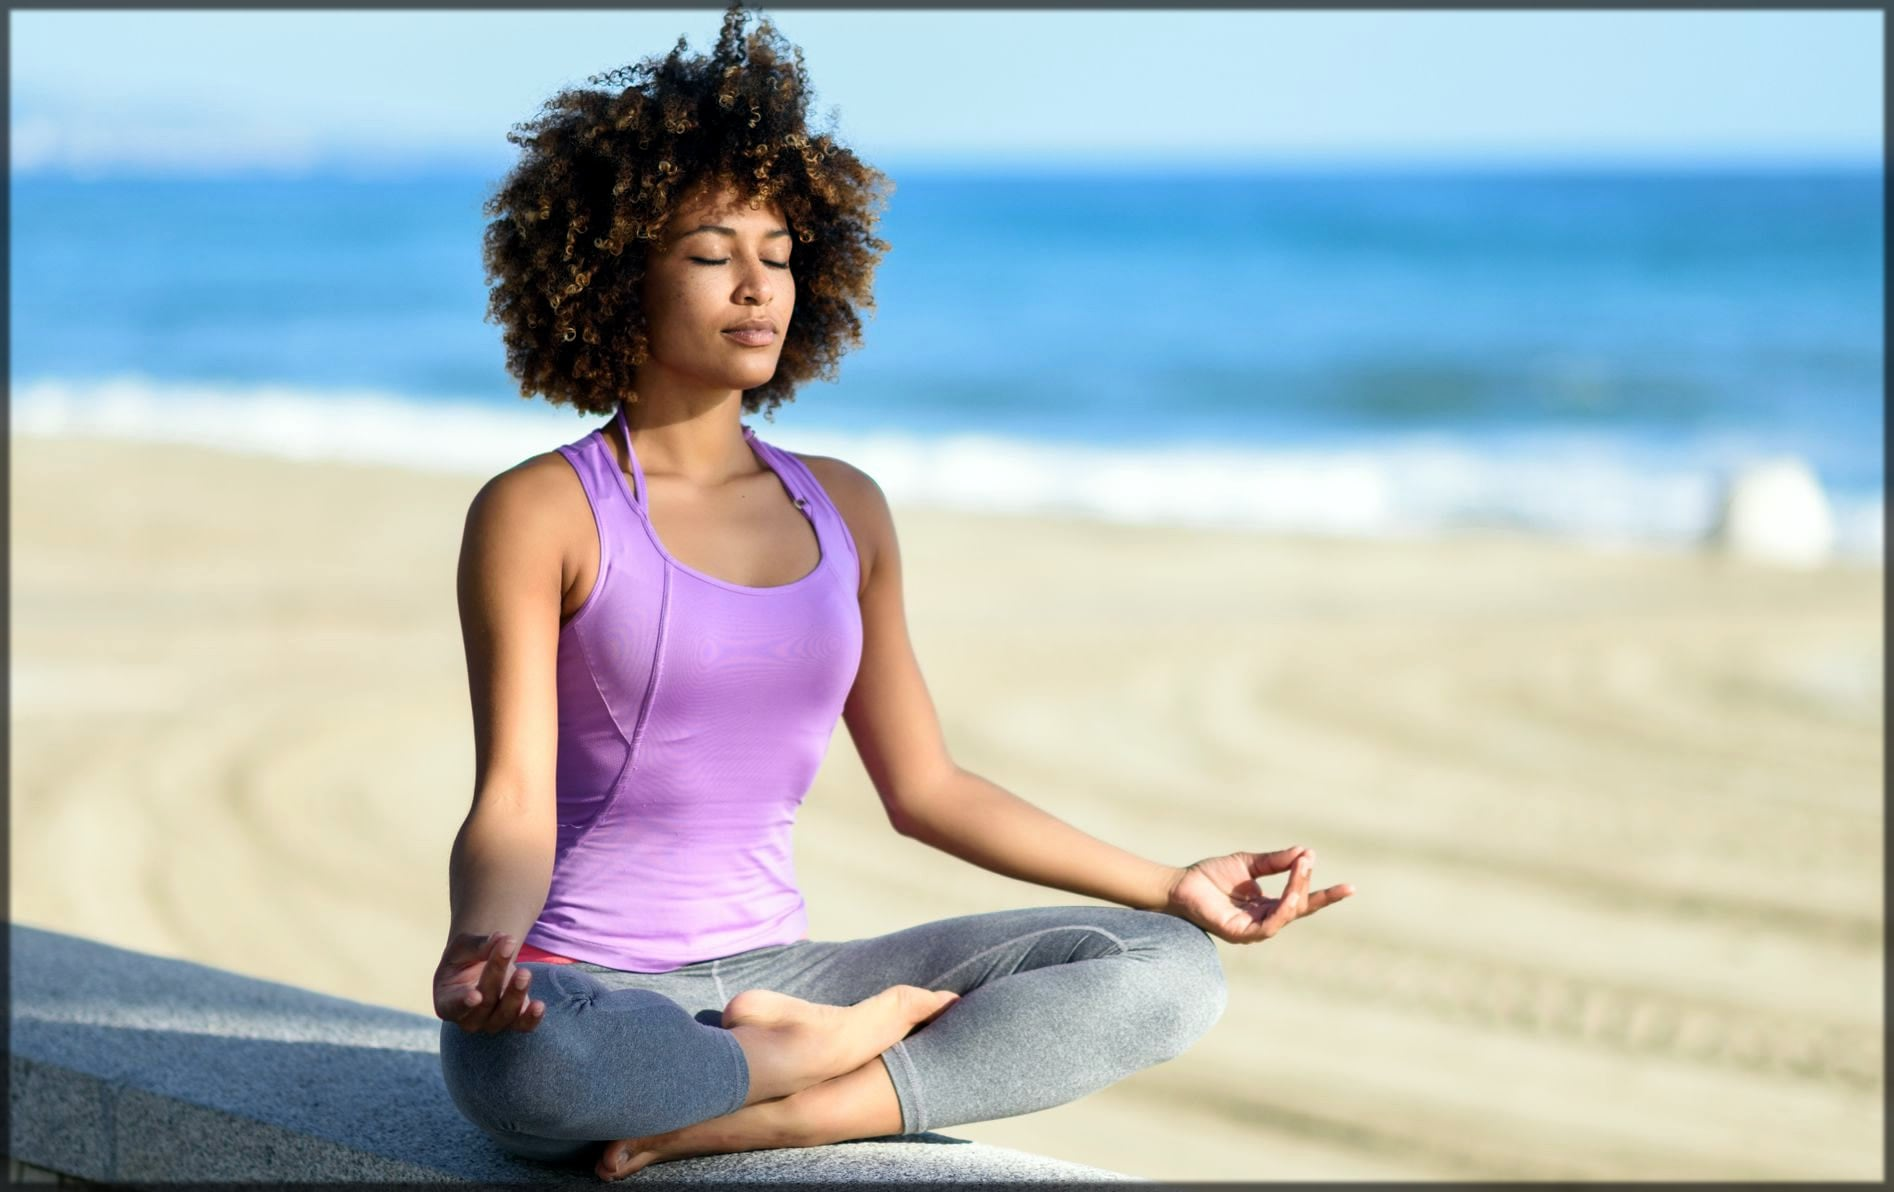 Meditation reduces stress and eye bags